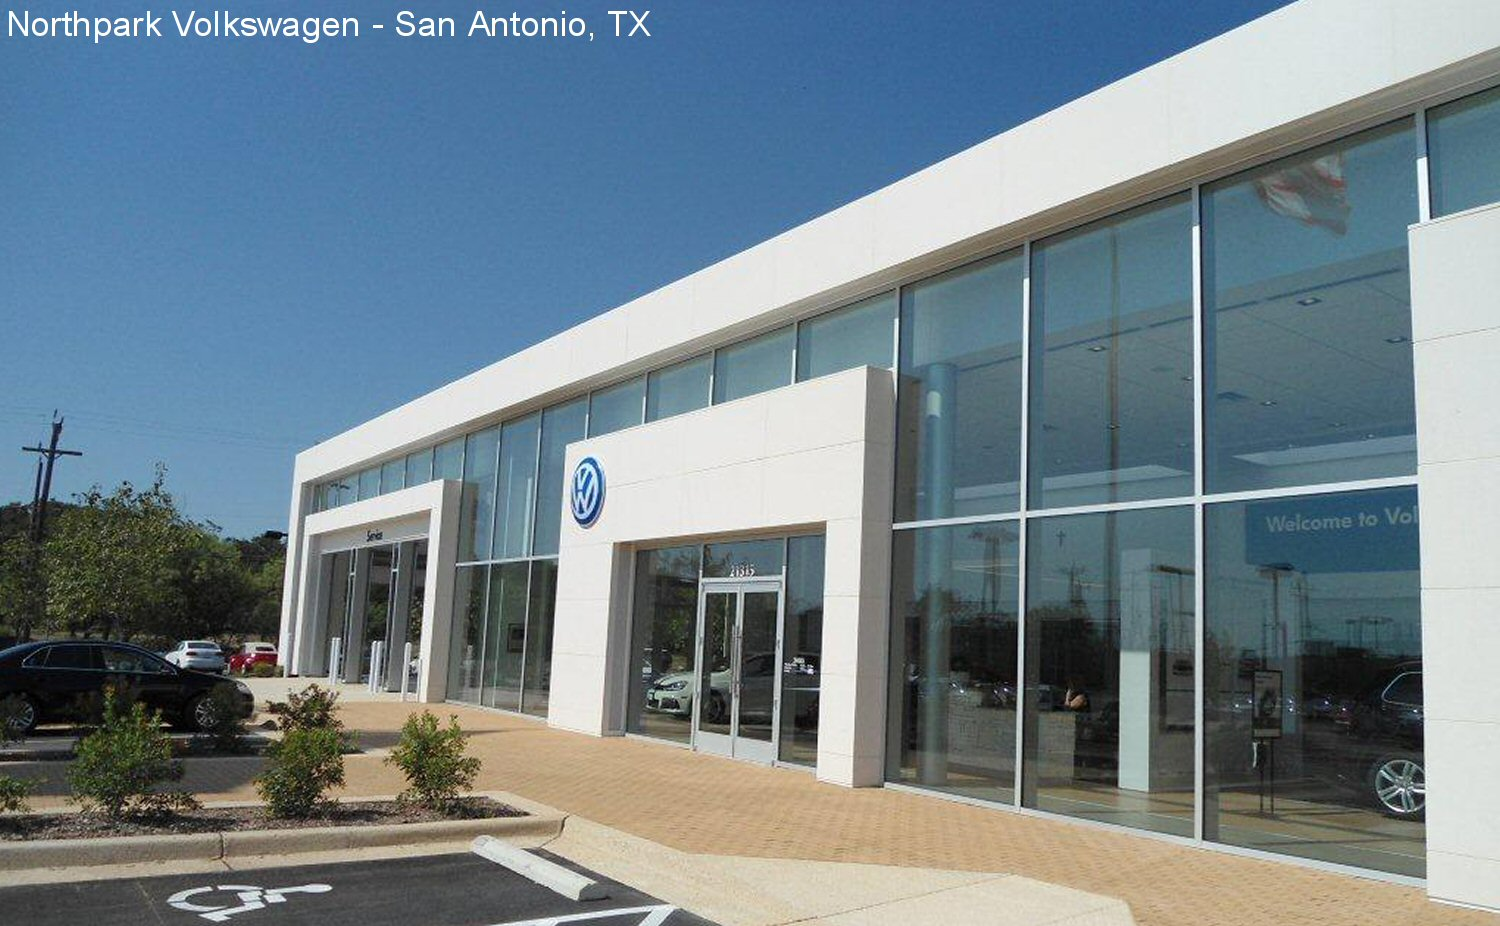 Volkswagen Dealership San Antonio 2017 2018 2019